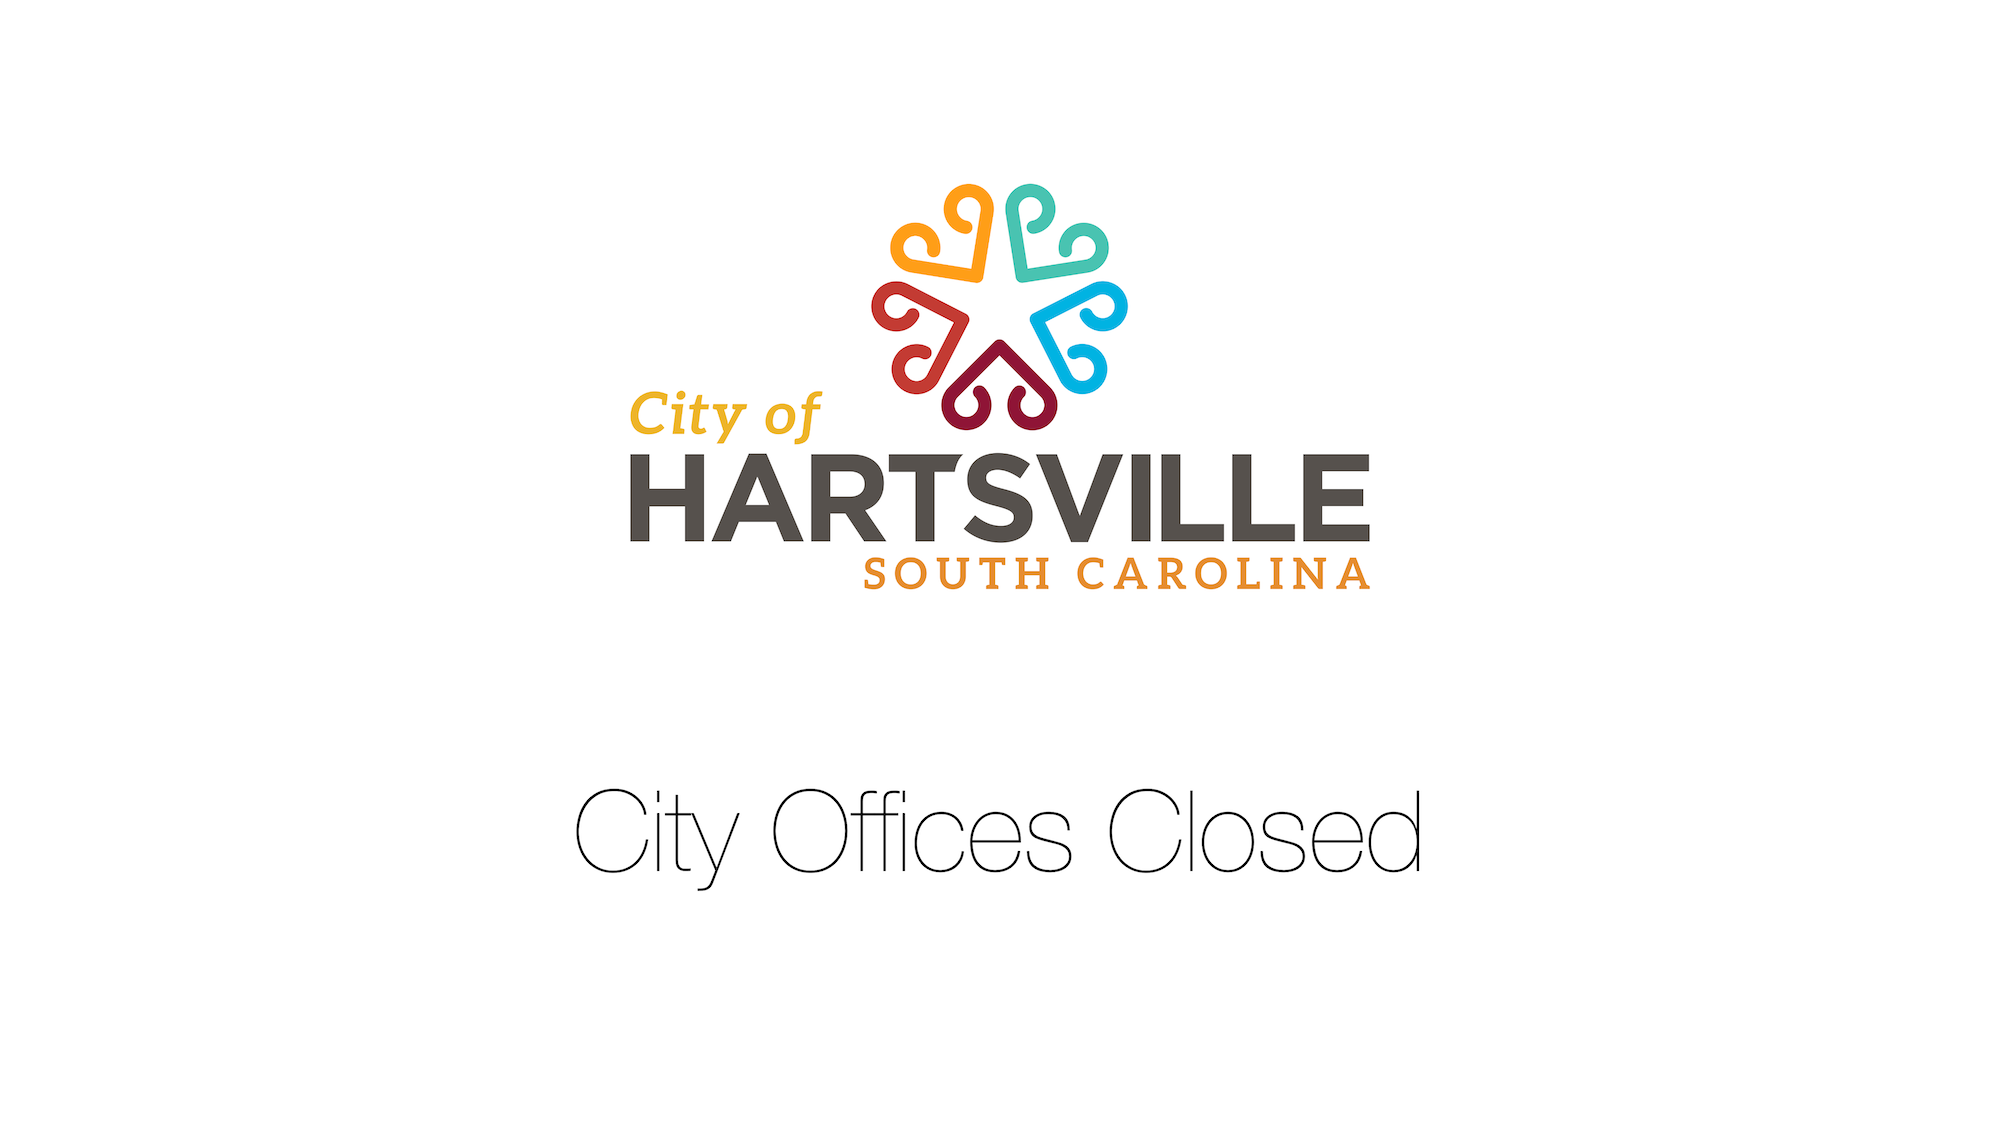 City of Hartsville offices are closed for a holiday.